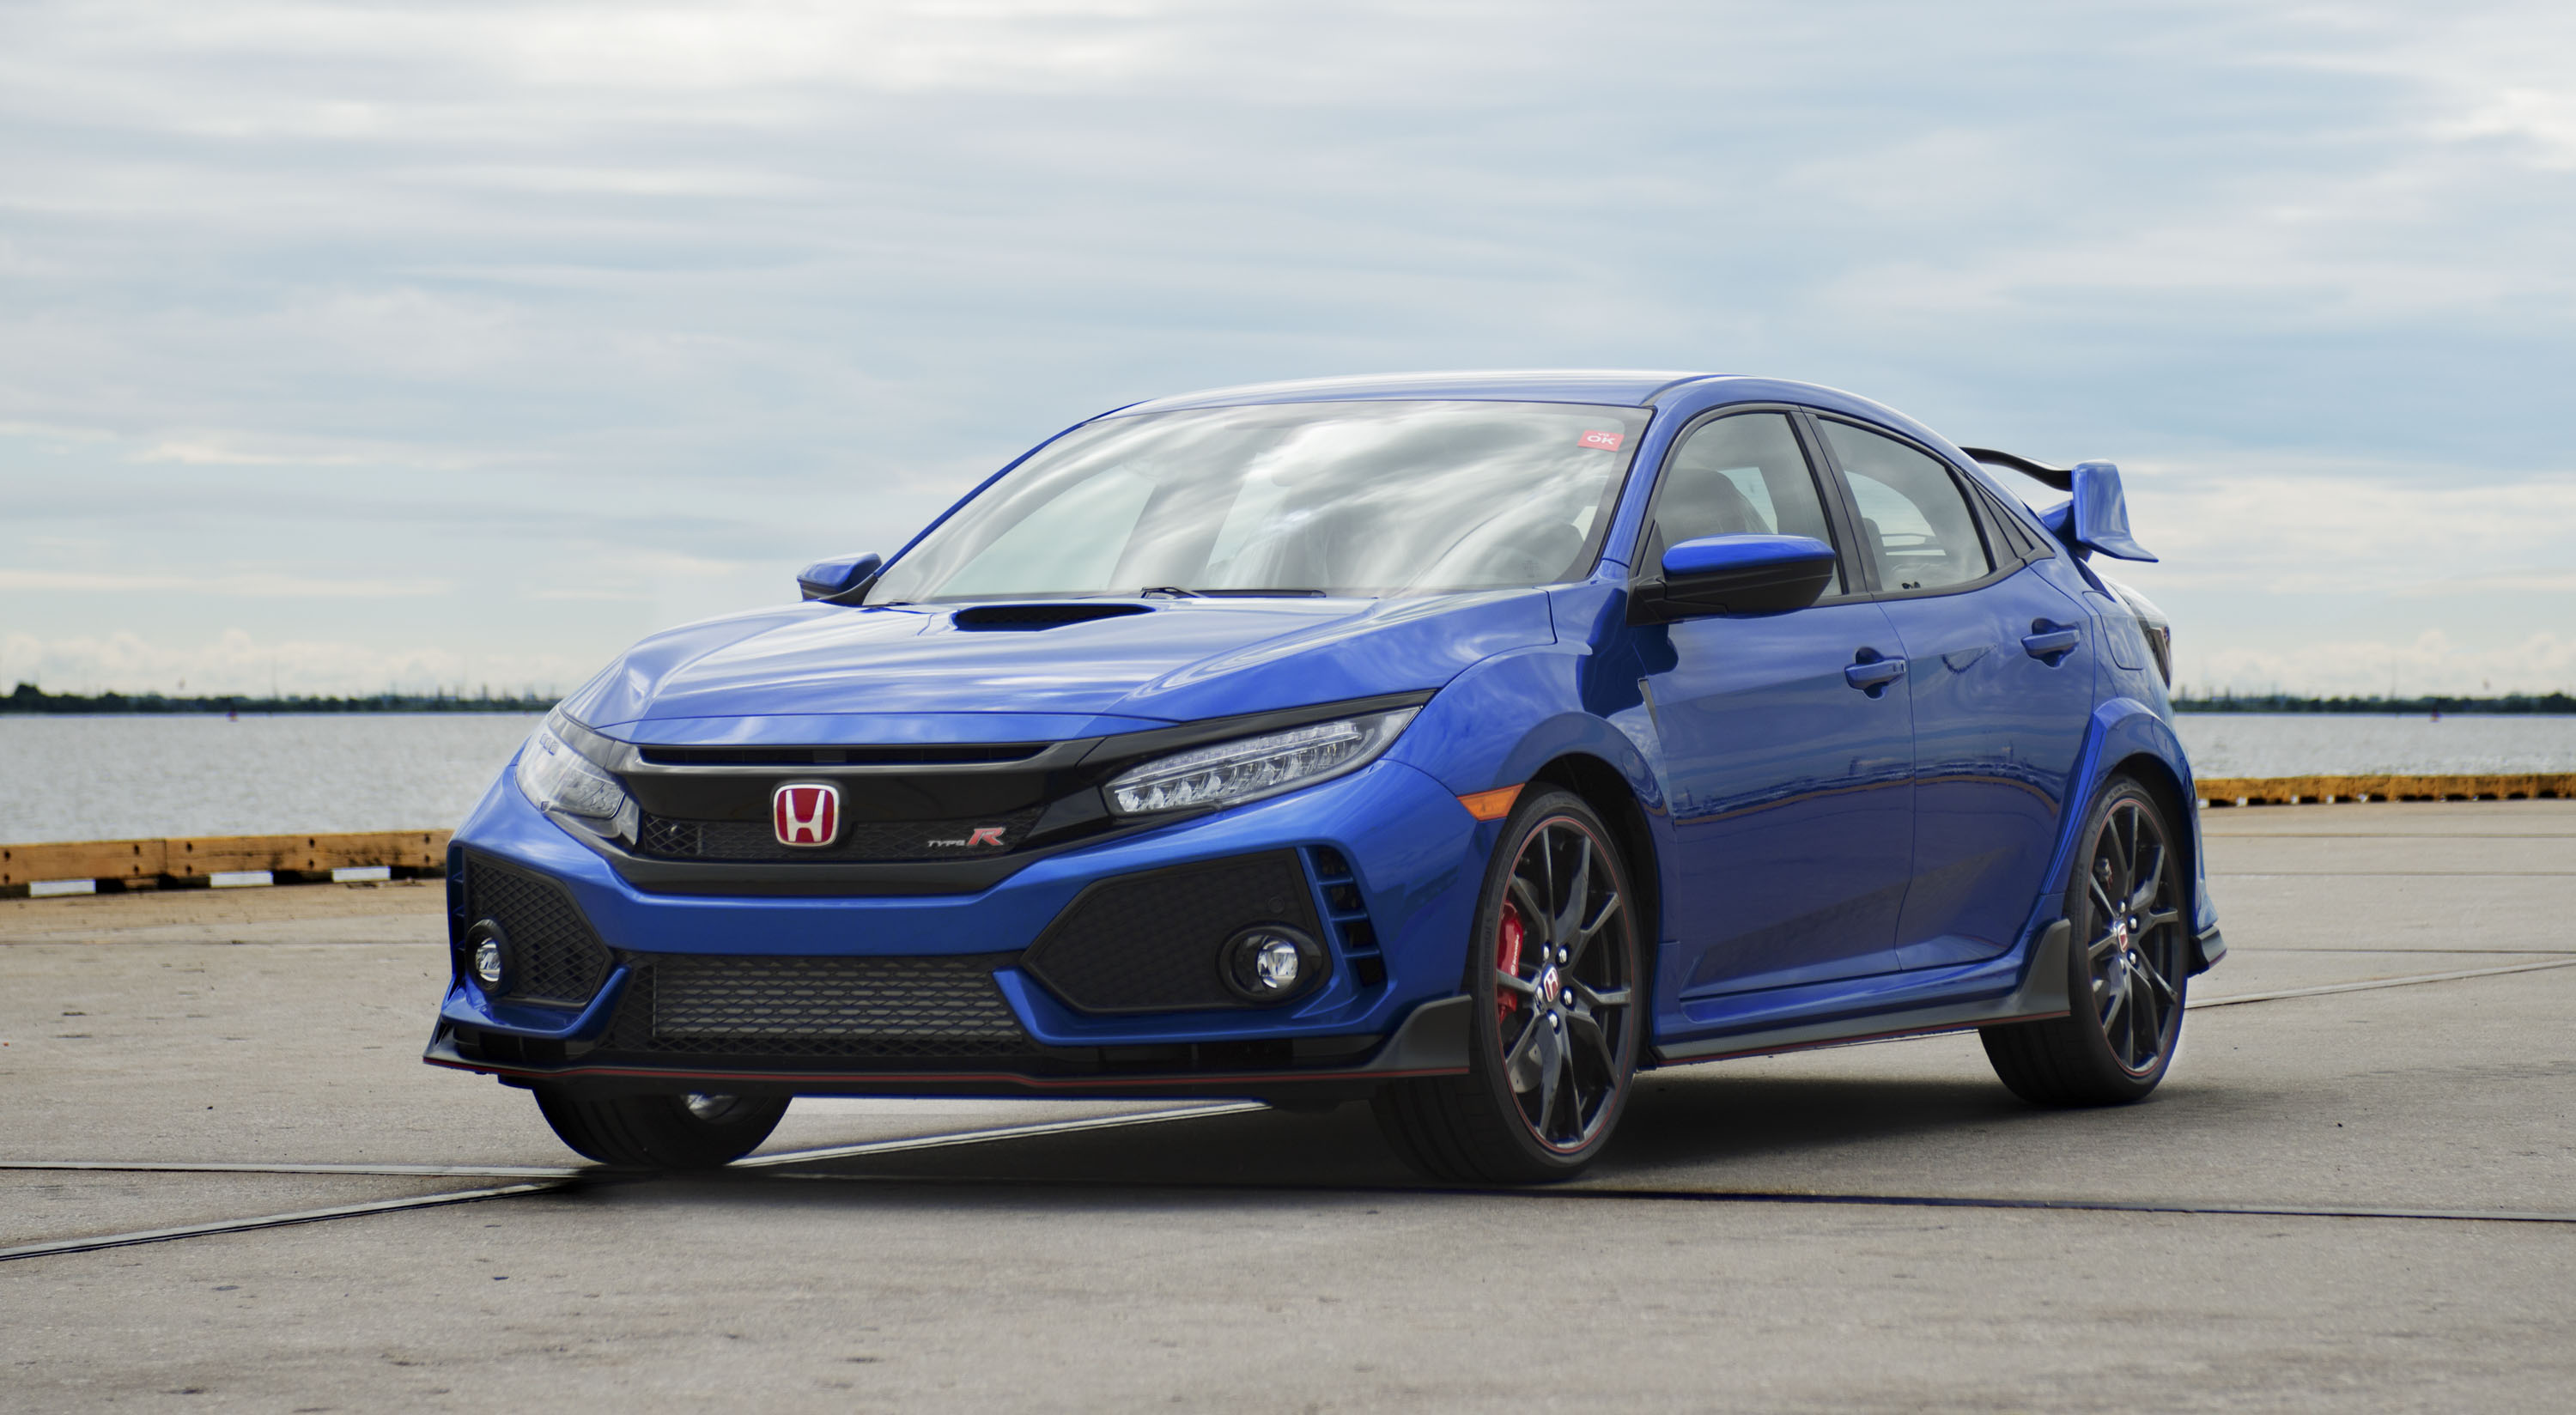 You Can Have The Honda Civic Type R Crate Engine For $6 5K